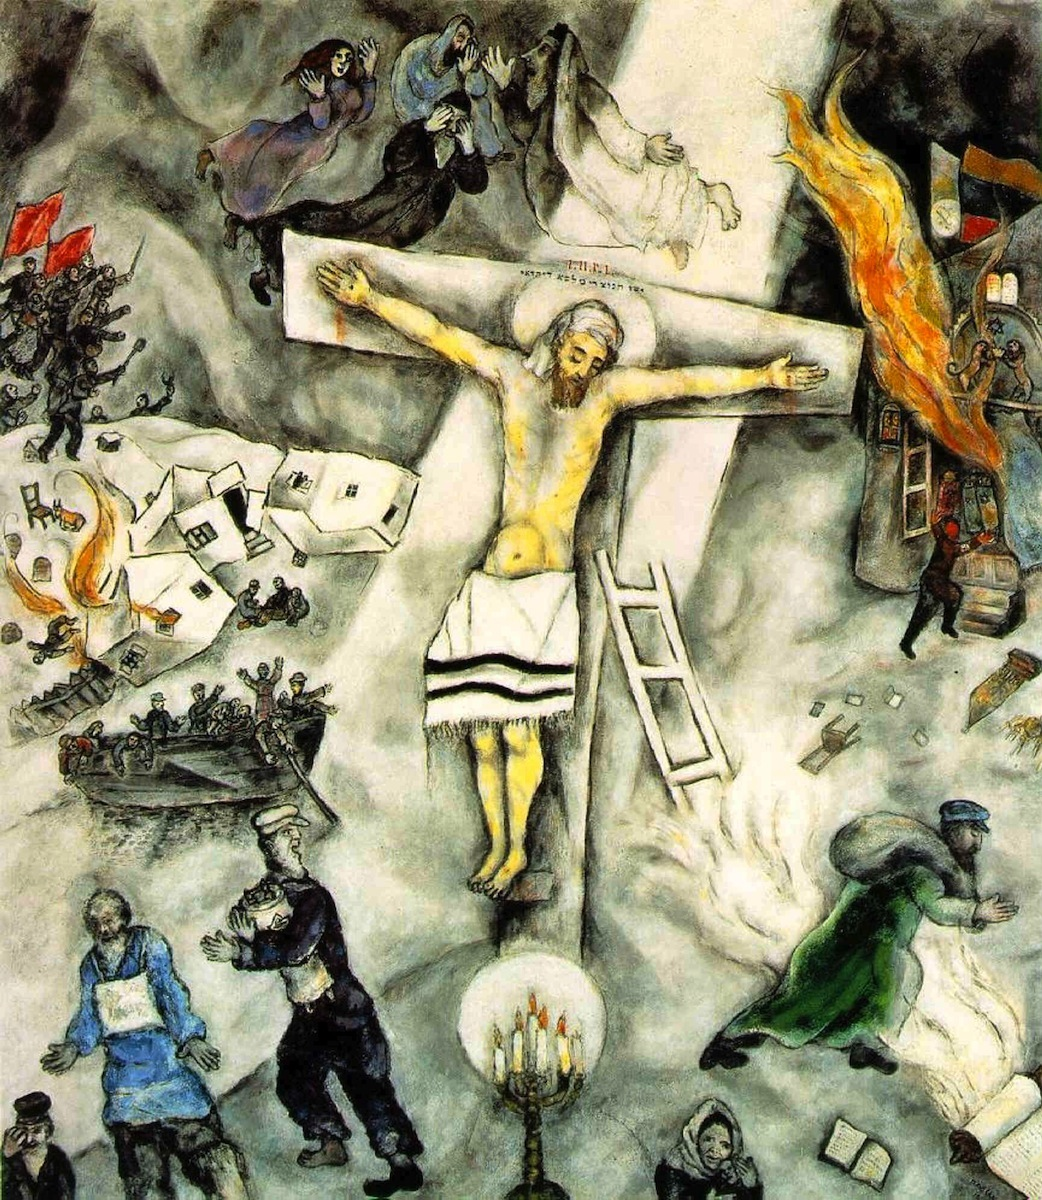 White Crucifixion (1938); oil on canvas by Marc Chagall, Art Institute of Chicago, gift of Alfred S. Alschuler